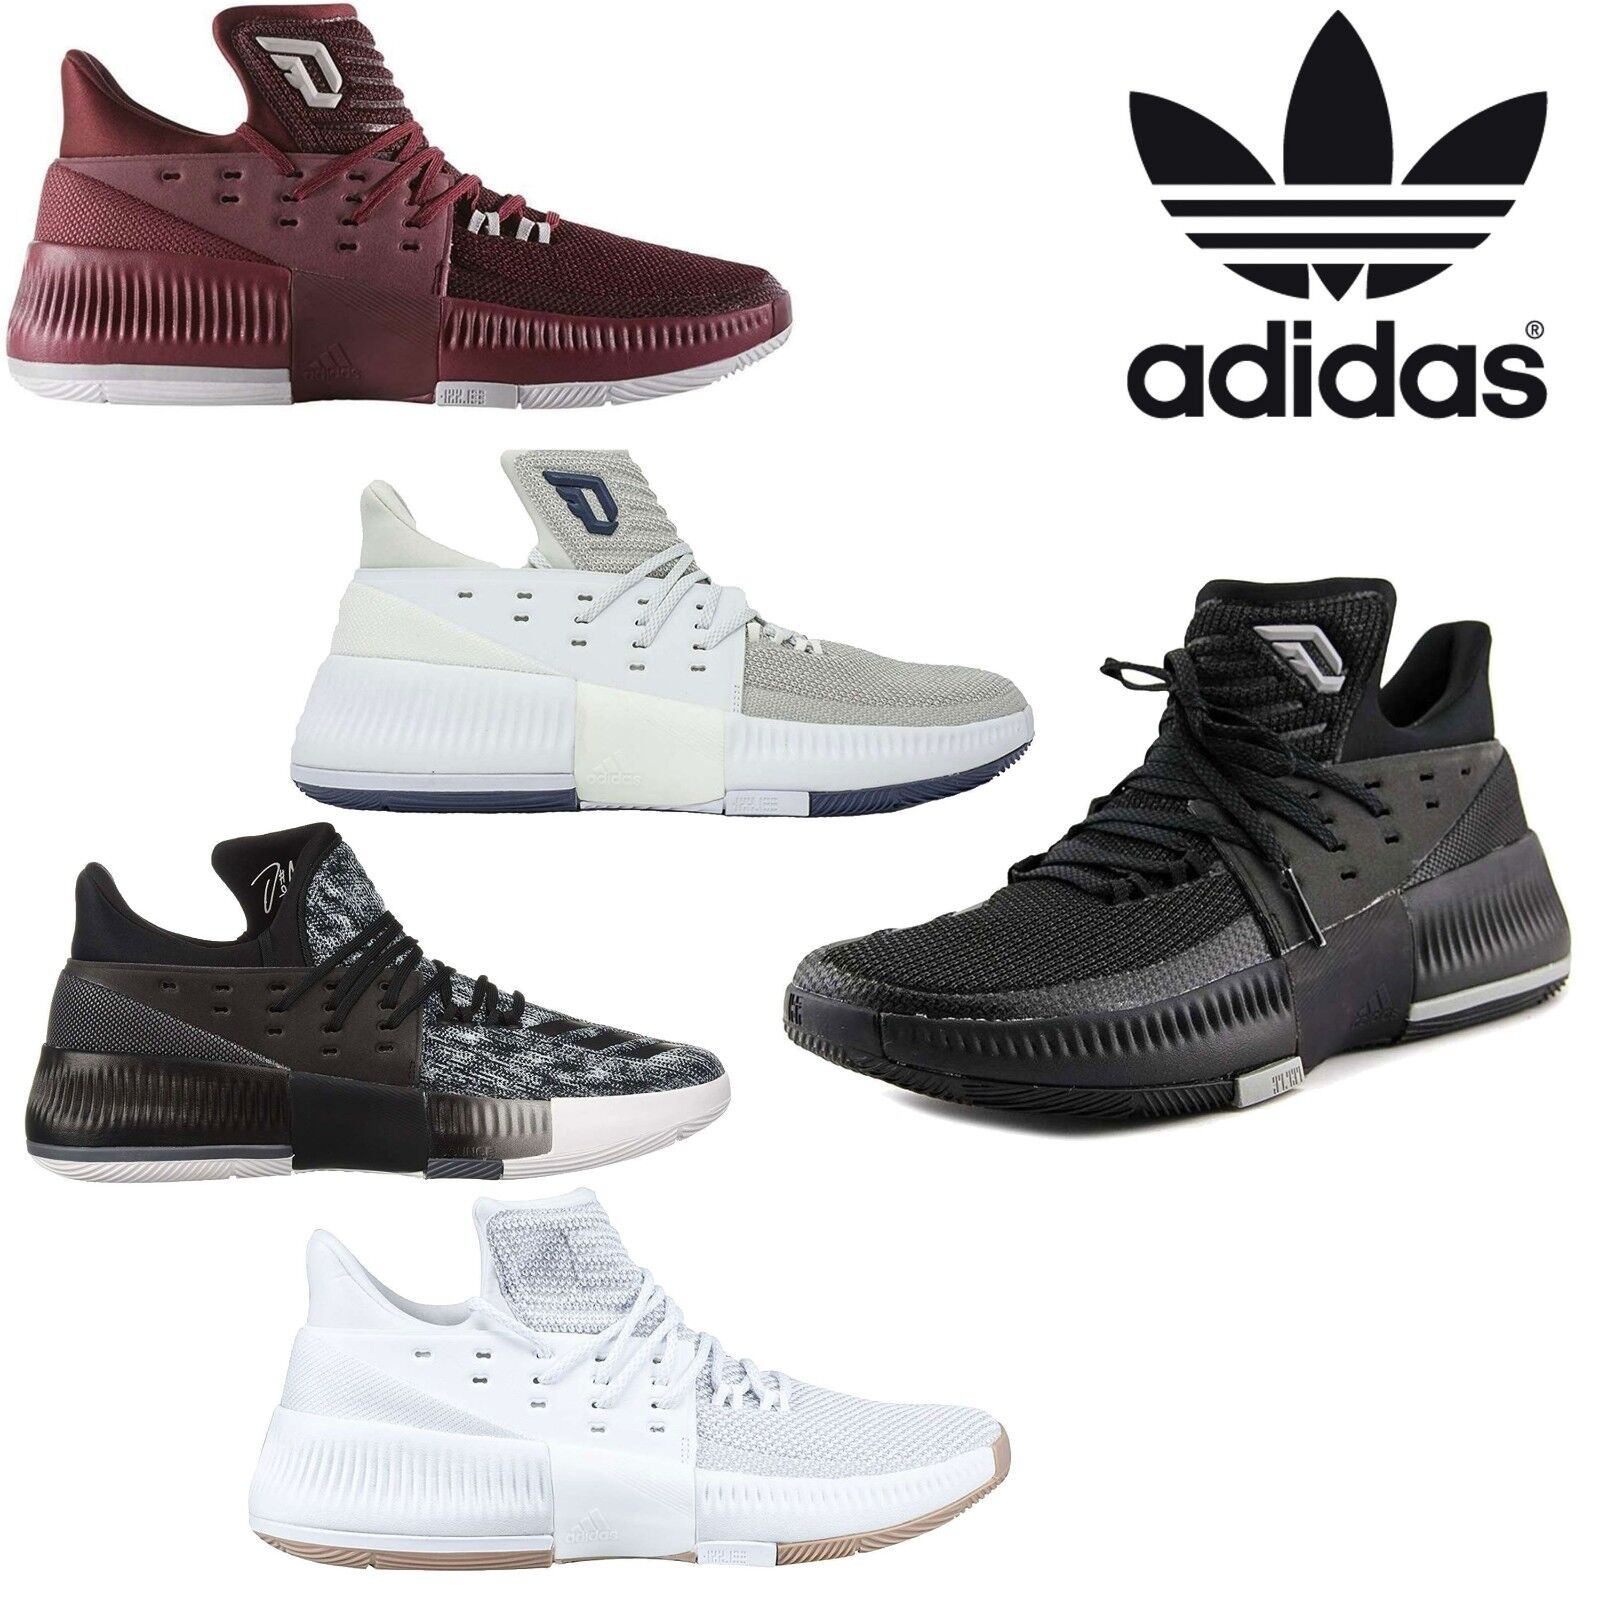 Adidas NEW Men's D Lillard Dame 3 Basketball shoes Lace Up Hi-Top Sneakers